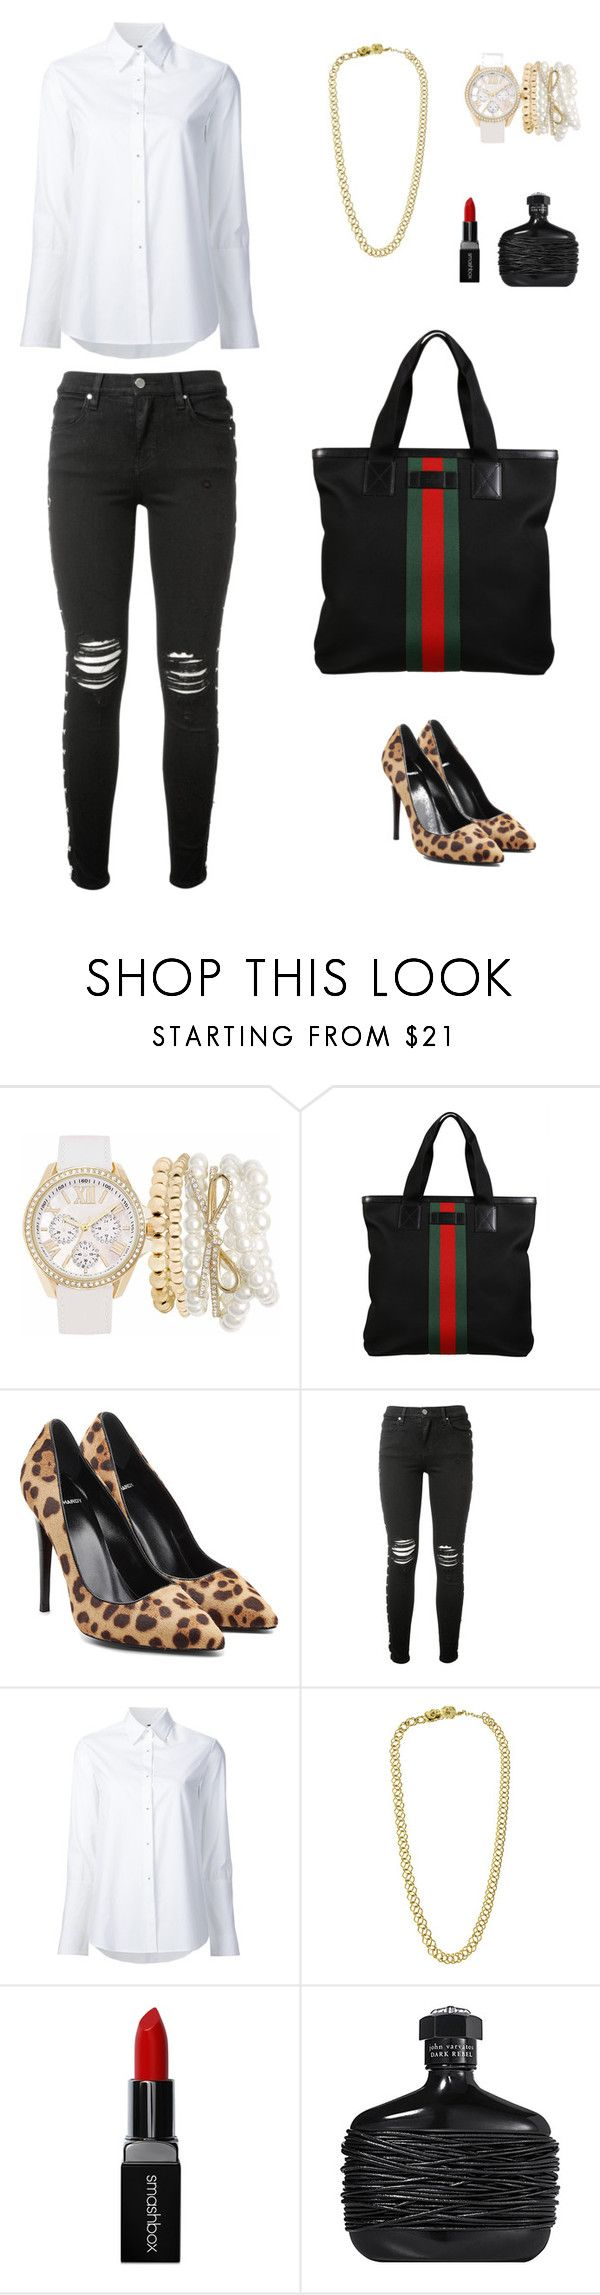 """that simple"" by leina-elansary on Polyvore featuring Mixit, Gucci, Pierre Hardy, AMIRI, Misha Nonoo, Chanel, Smashbox and John Varvatos"